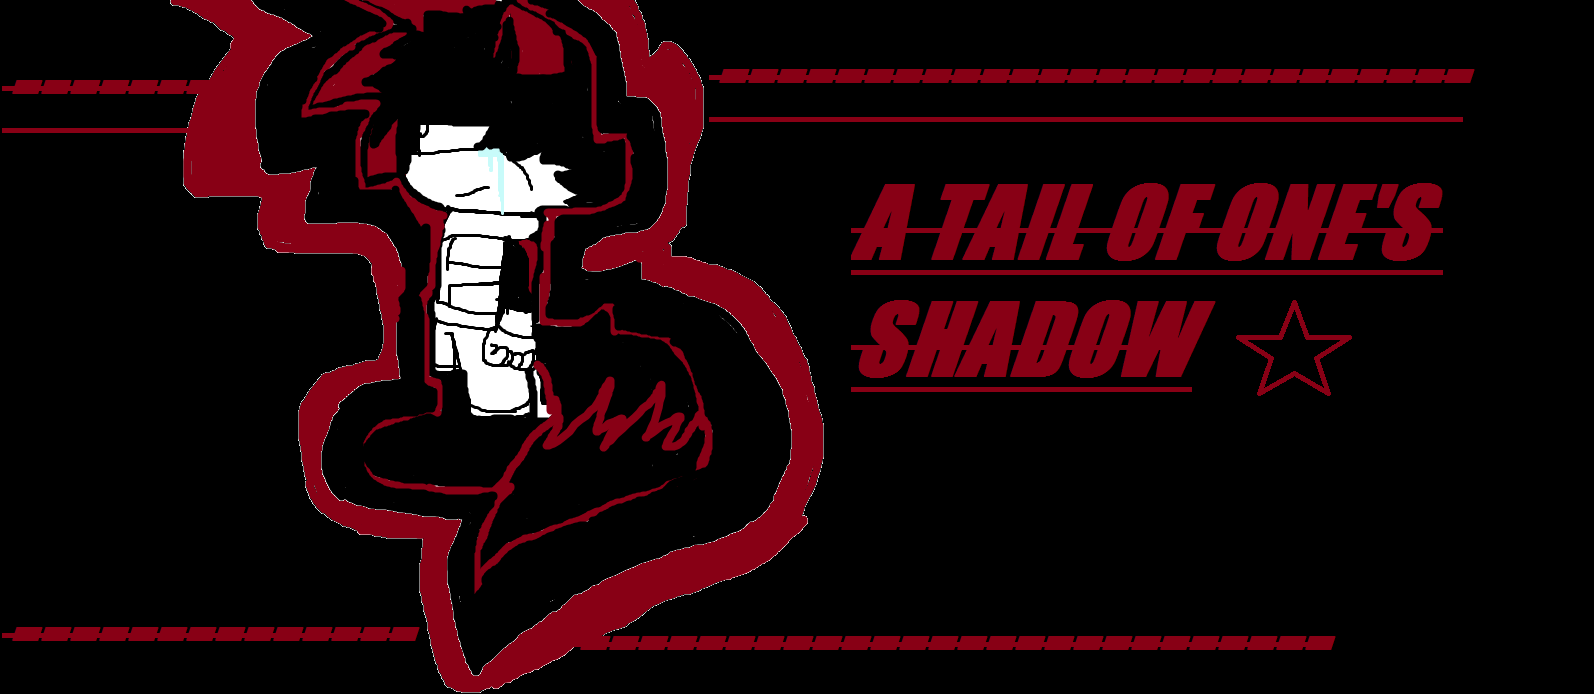 A TAIL OF ONE'S SHADOW